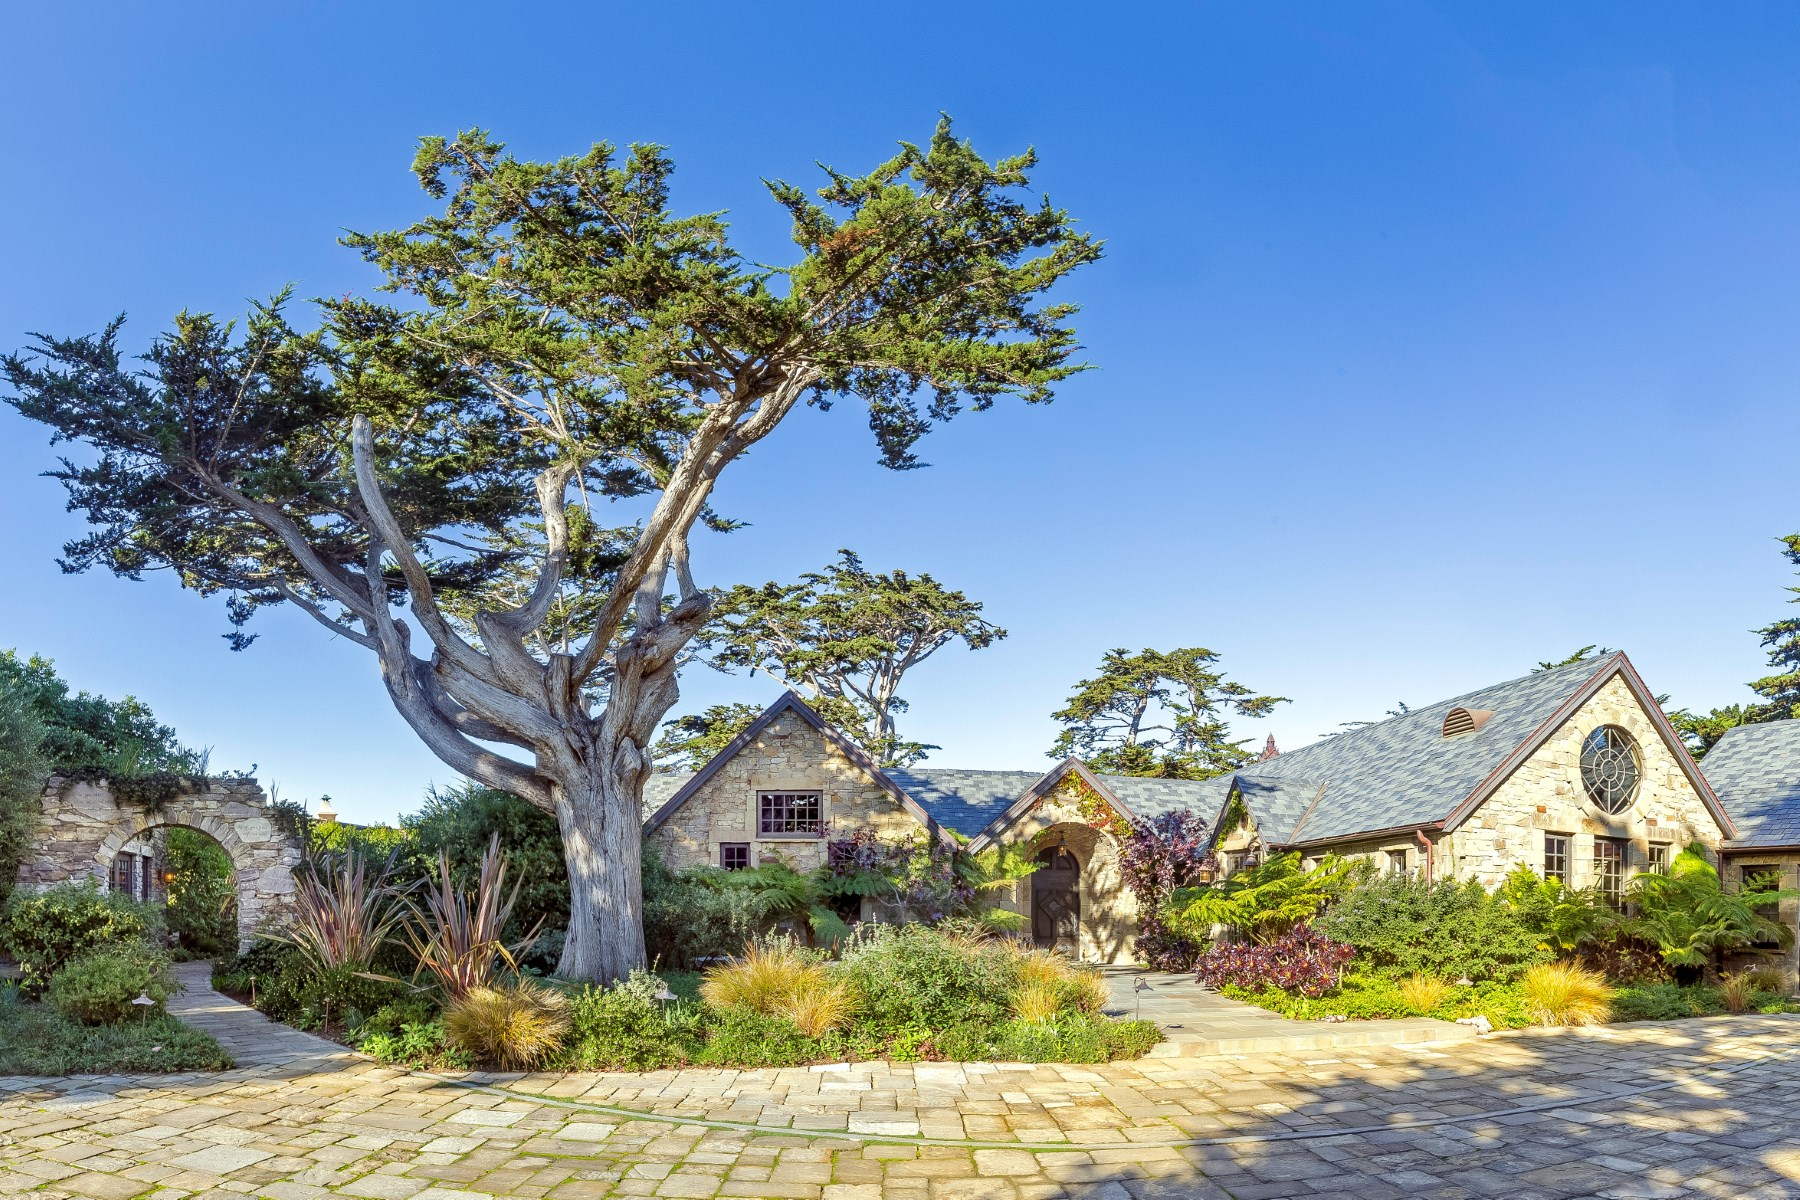 Single Family Home for Sale at Like No Other 26262 Isabella Avenue Carmel, California 93923 United States